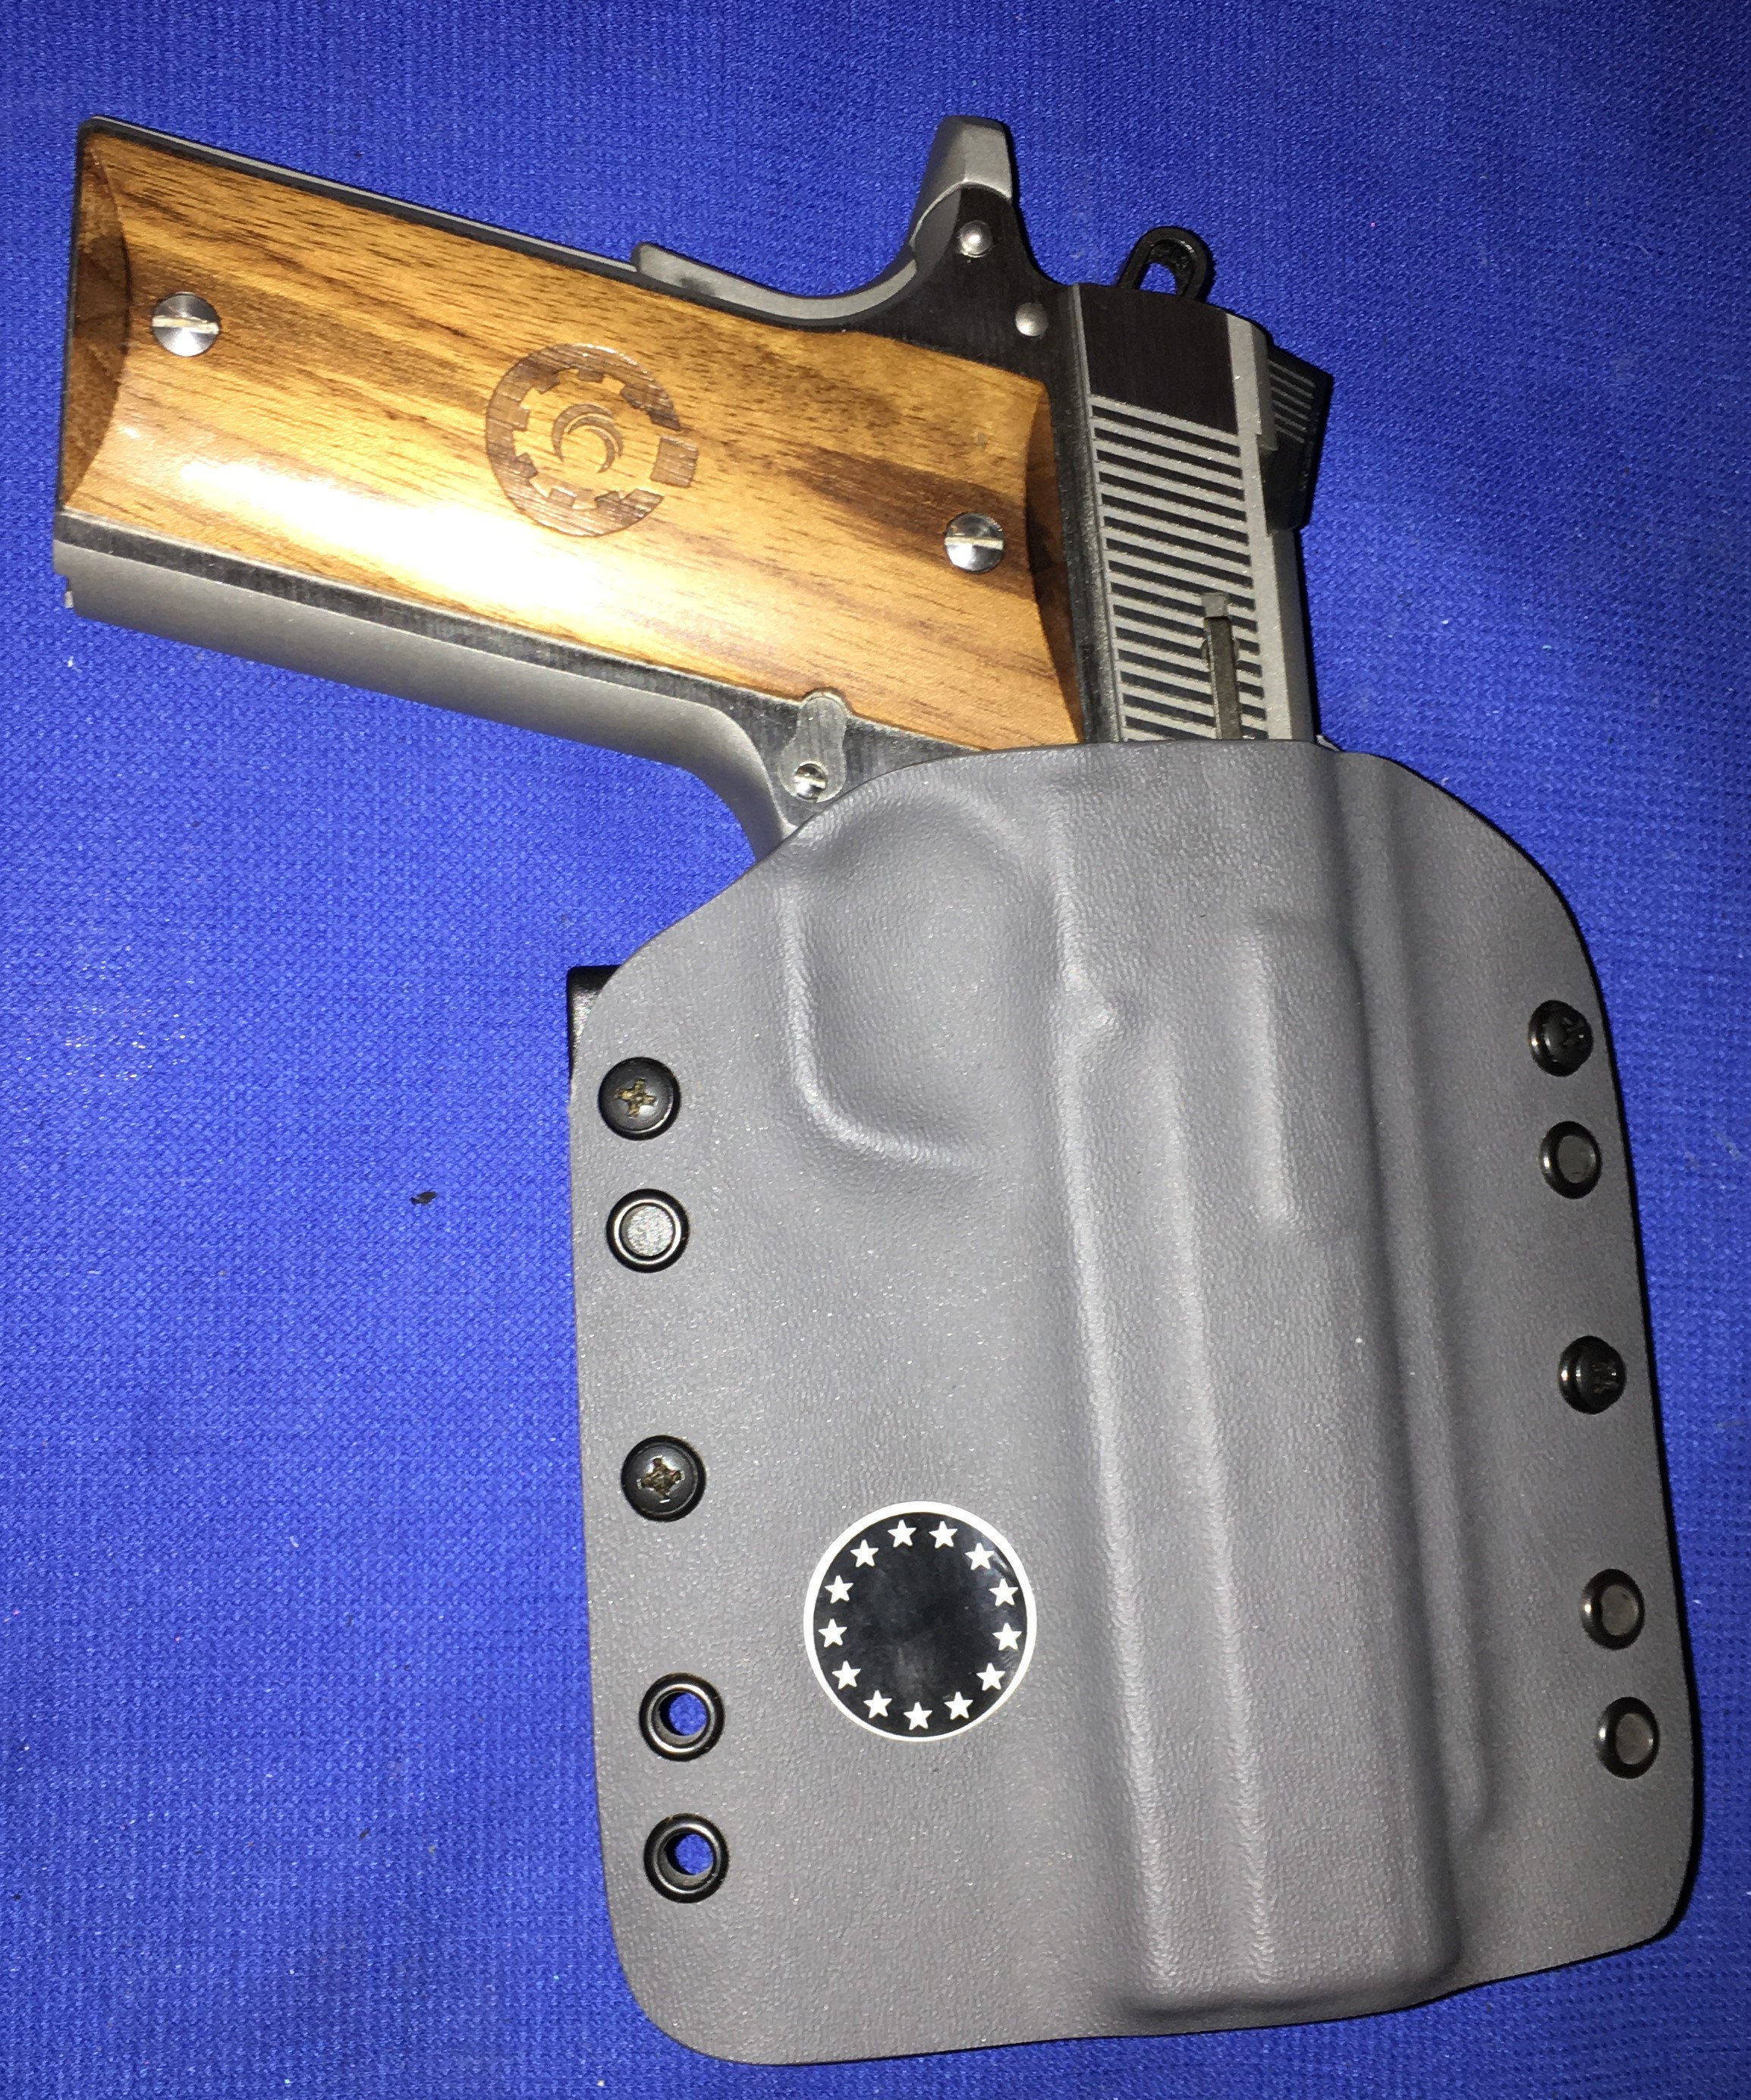 The Coonan Line of Holsters from Betsy Ross Kydex